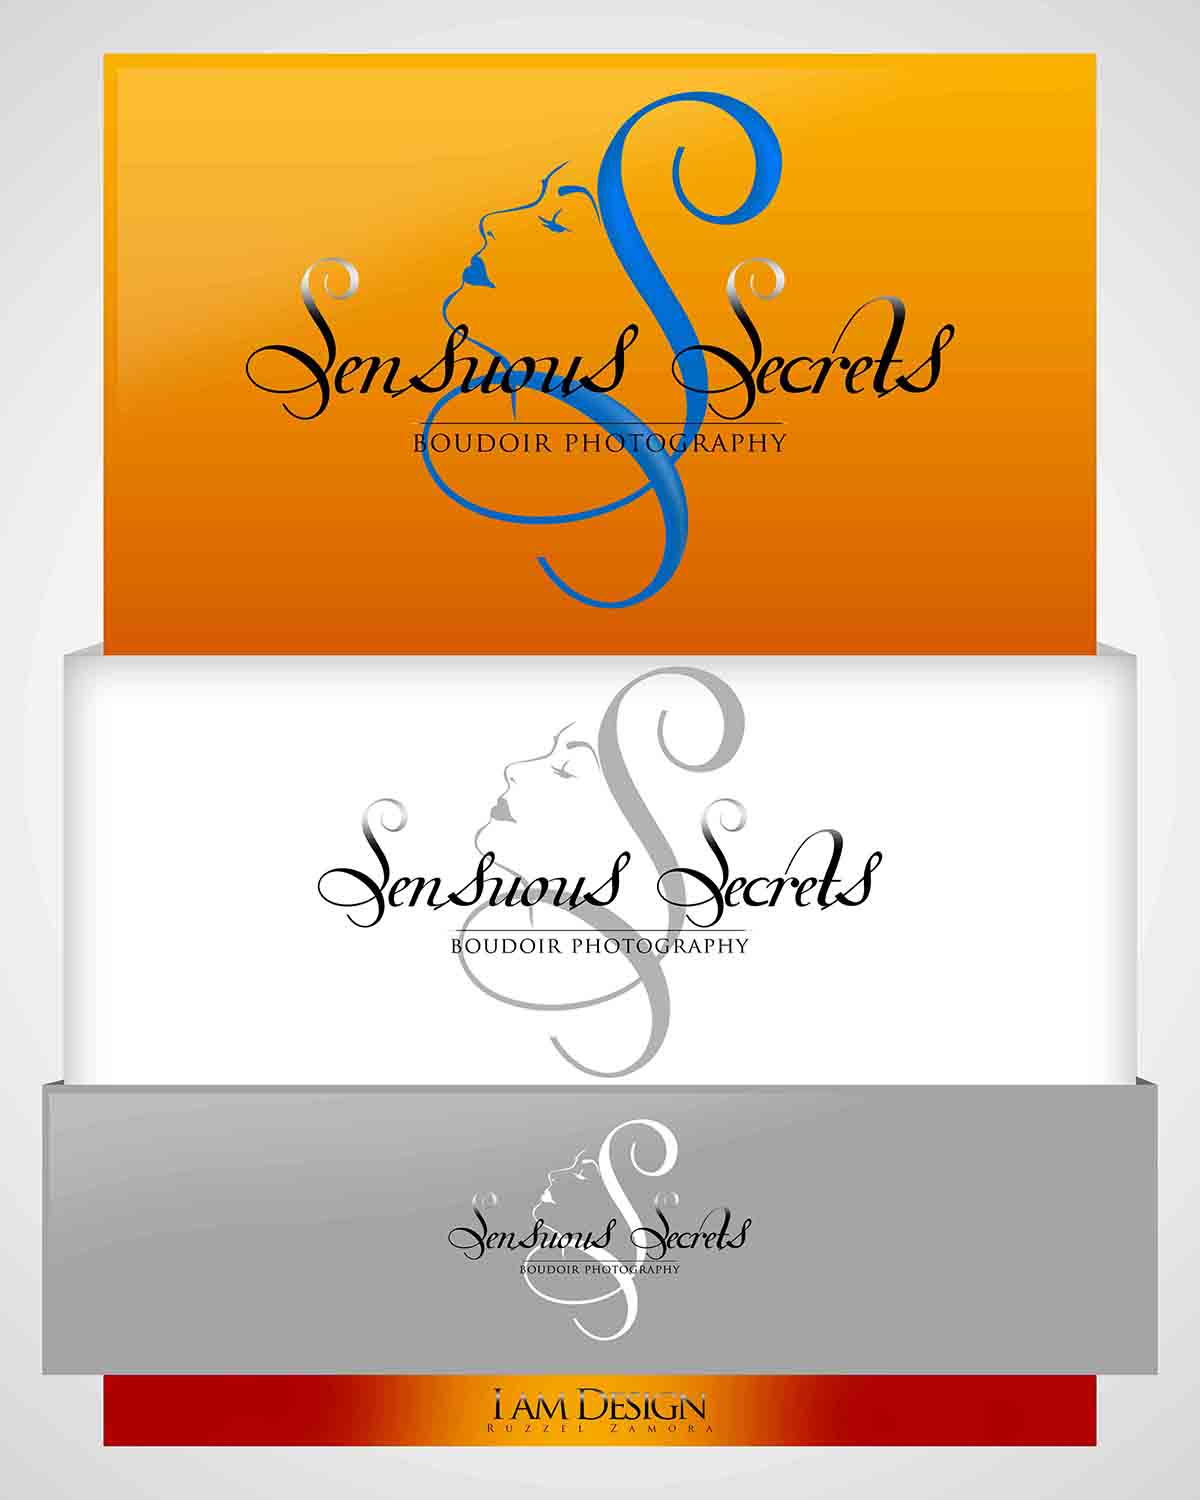 Logo Design by Ruzzel Zamora - Entry No. 19 in the Logo Design Contest Artistic Logo Design for Sensuous Secrets Boudoir Photography.